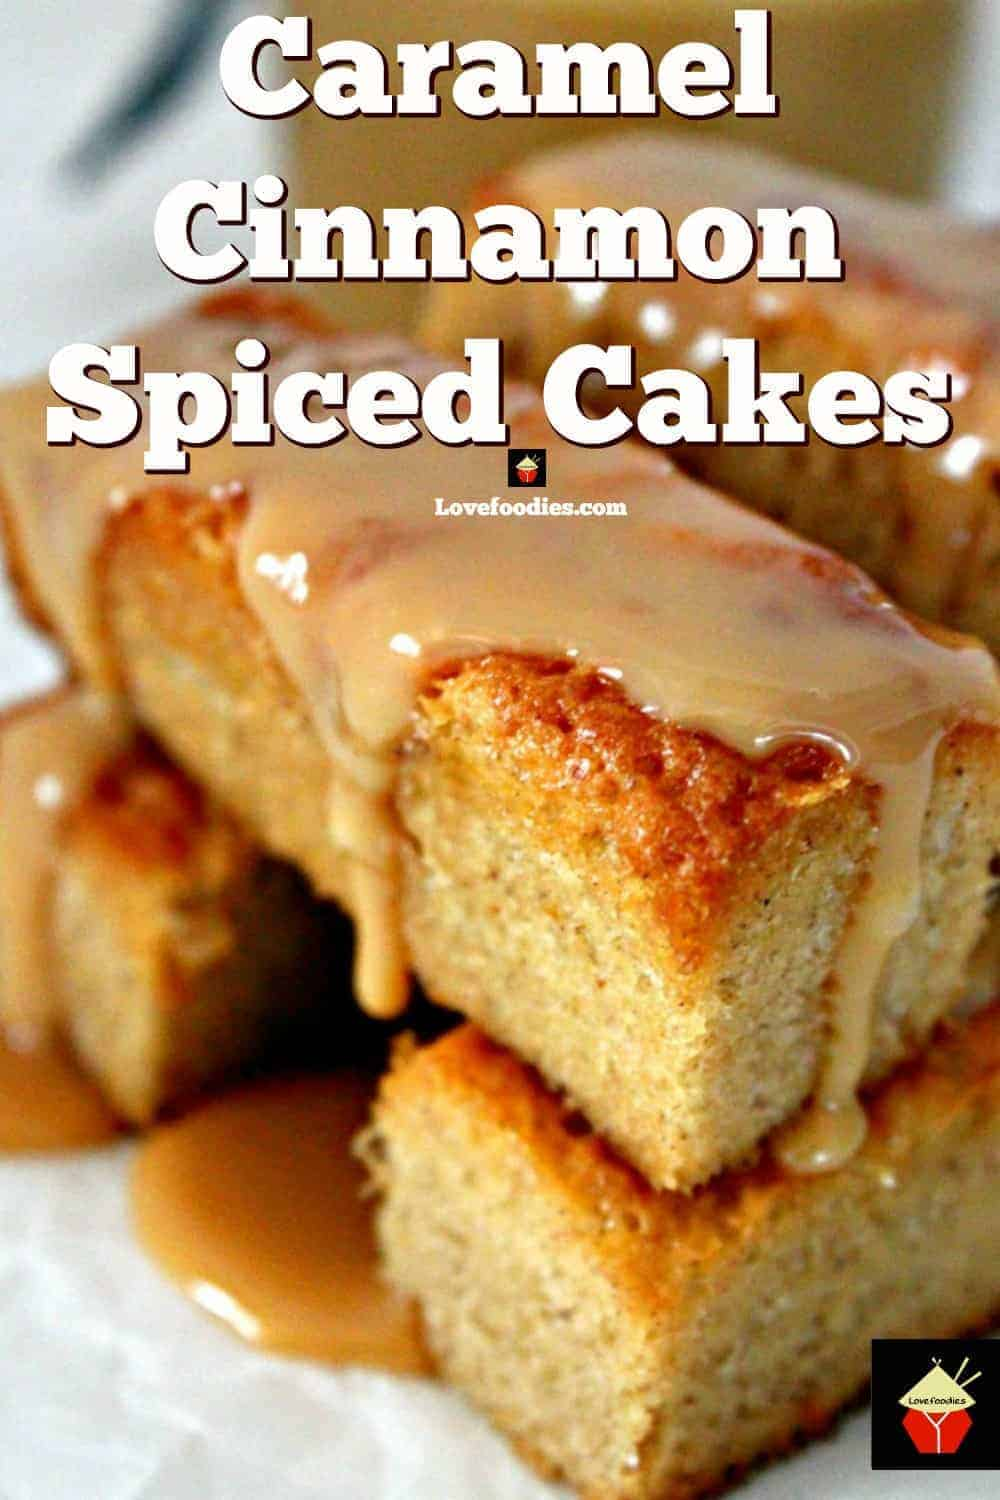 Mini Caramel Cinnamon Spiced Cakes. Soft, fluffy cakes with a hint of holiday spice and drizzled with caramel! Make in a mini loaf pan or cupcake pan